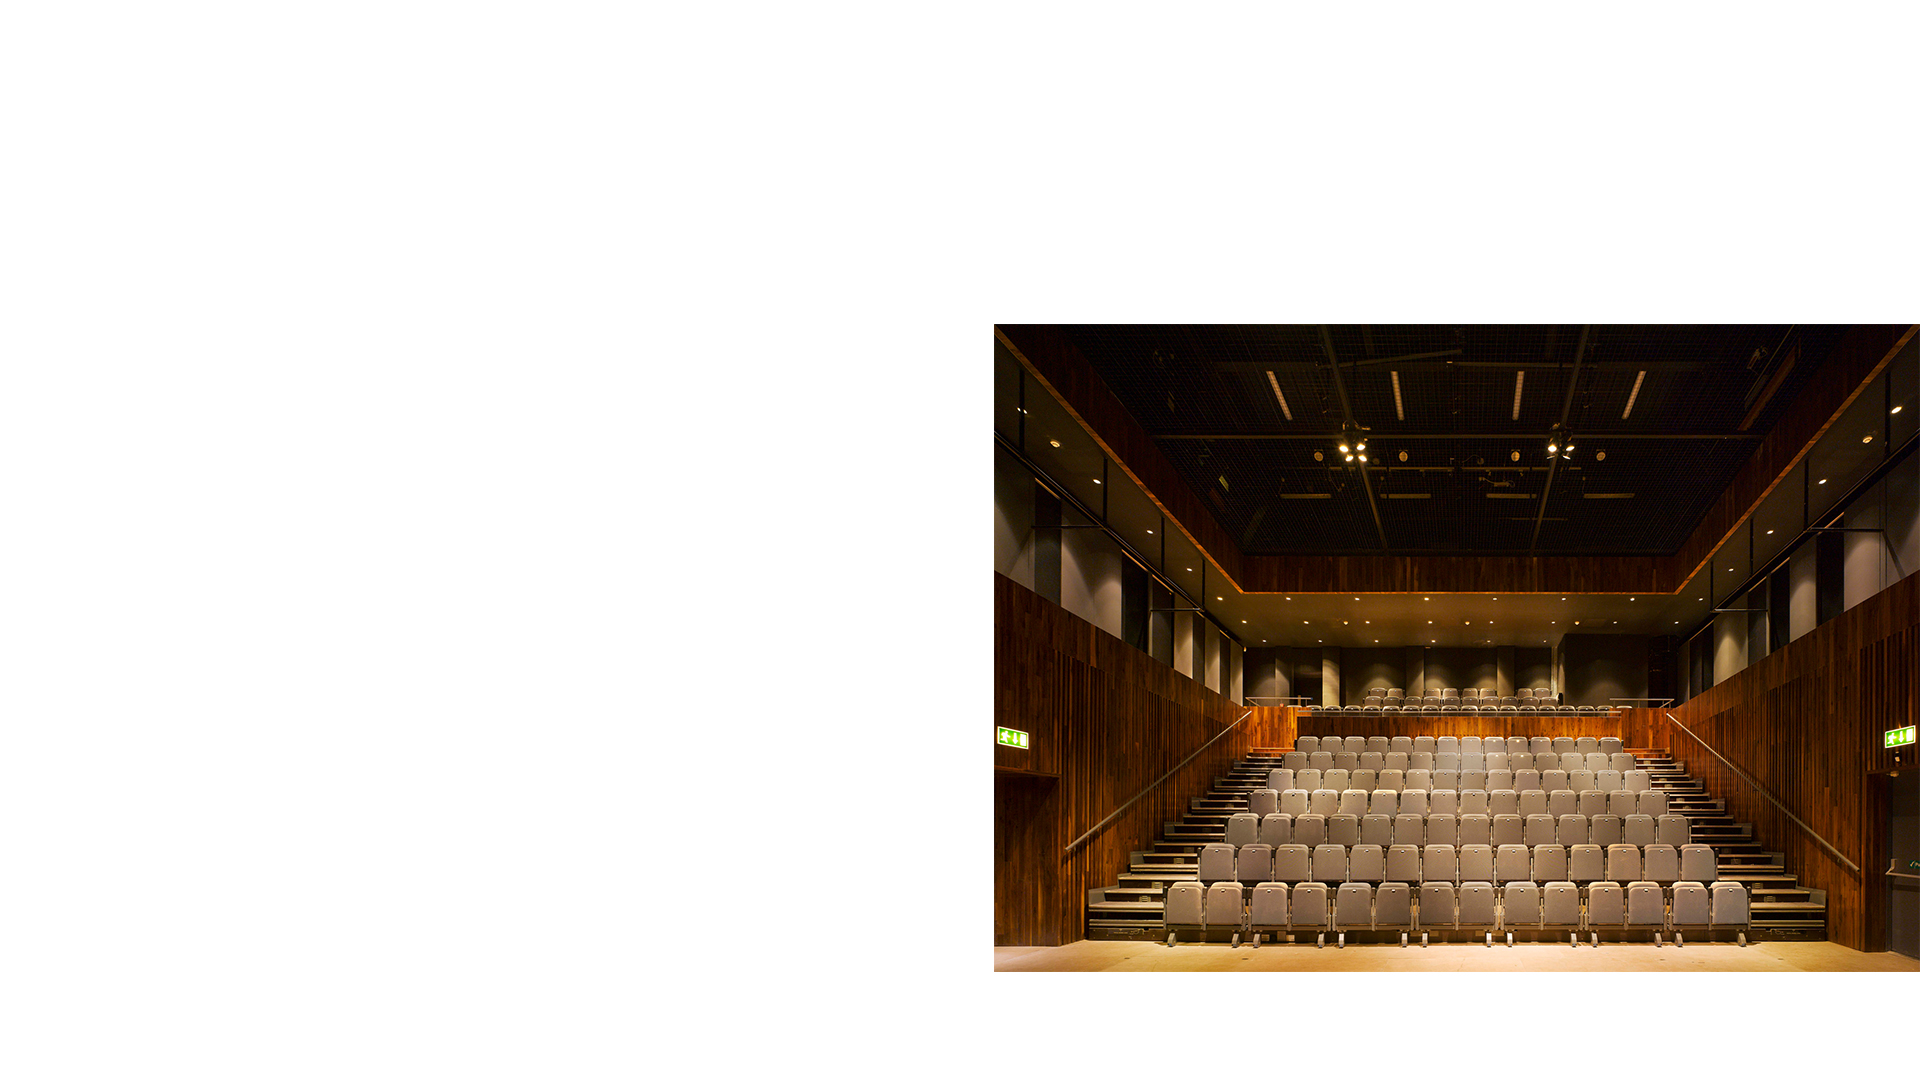 The Jerome Hands Theatre with seats deployed National Opera House Wexford Ireland. One of the great small opera houses of the world.